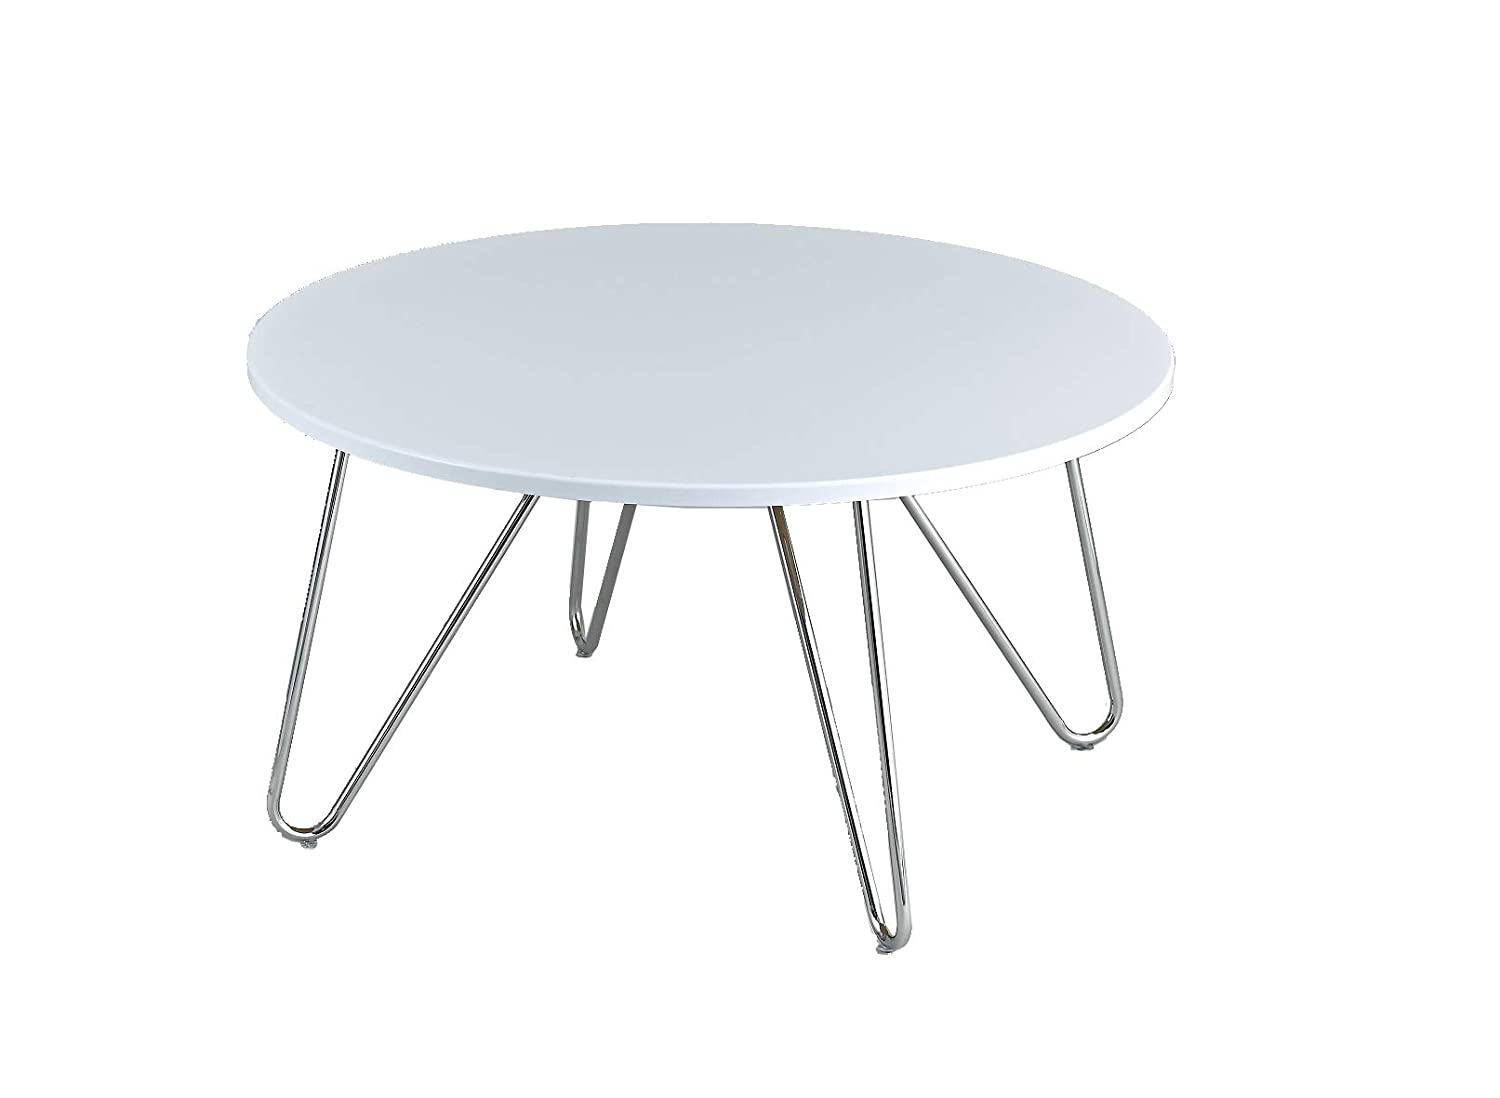 Aspect Happer Round Wooden Coffee Table With Hairpin Legs White